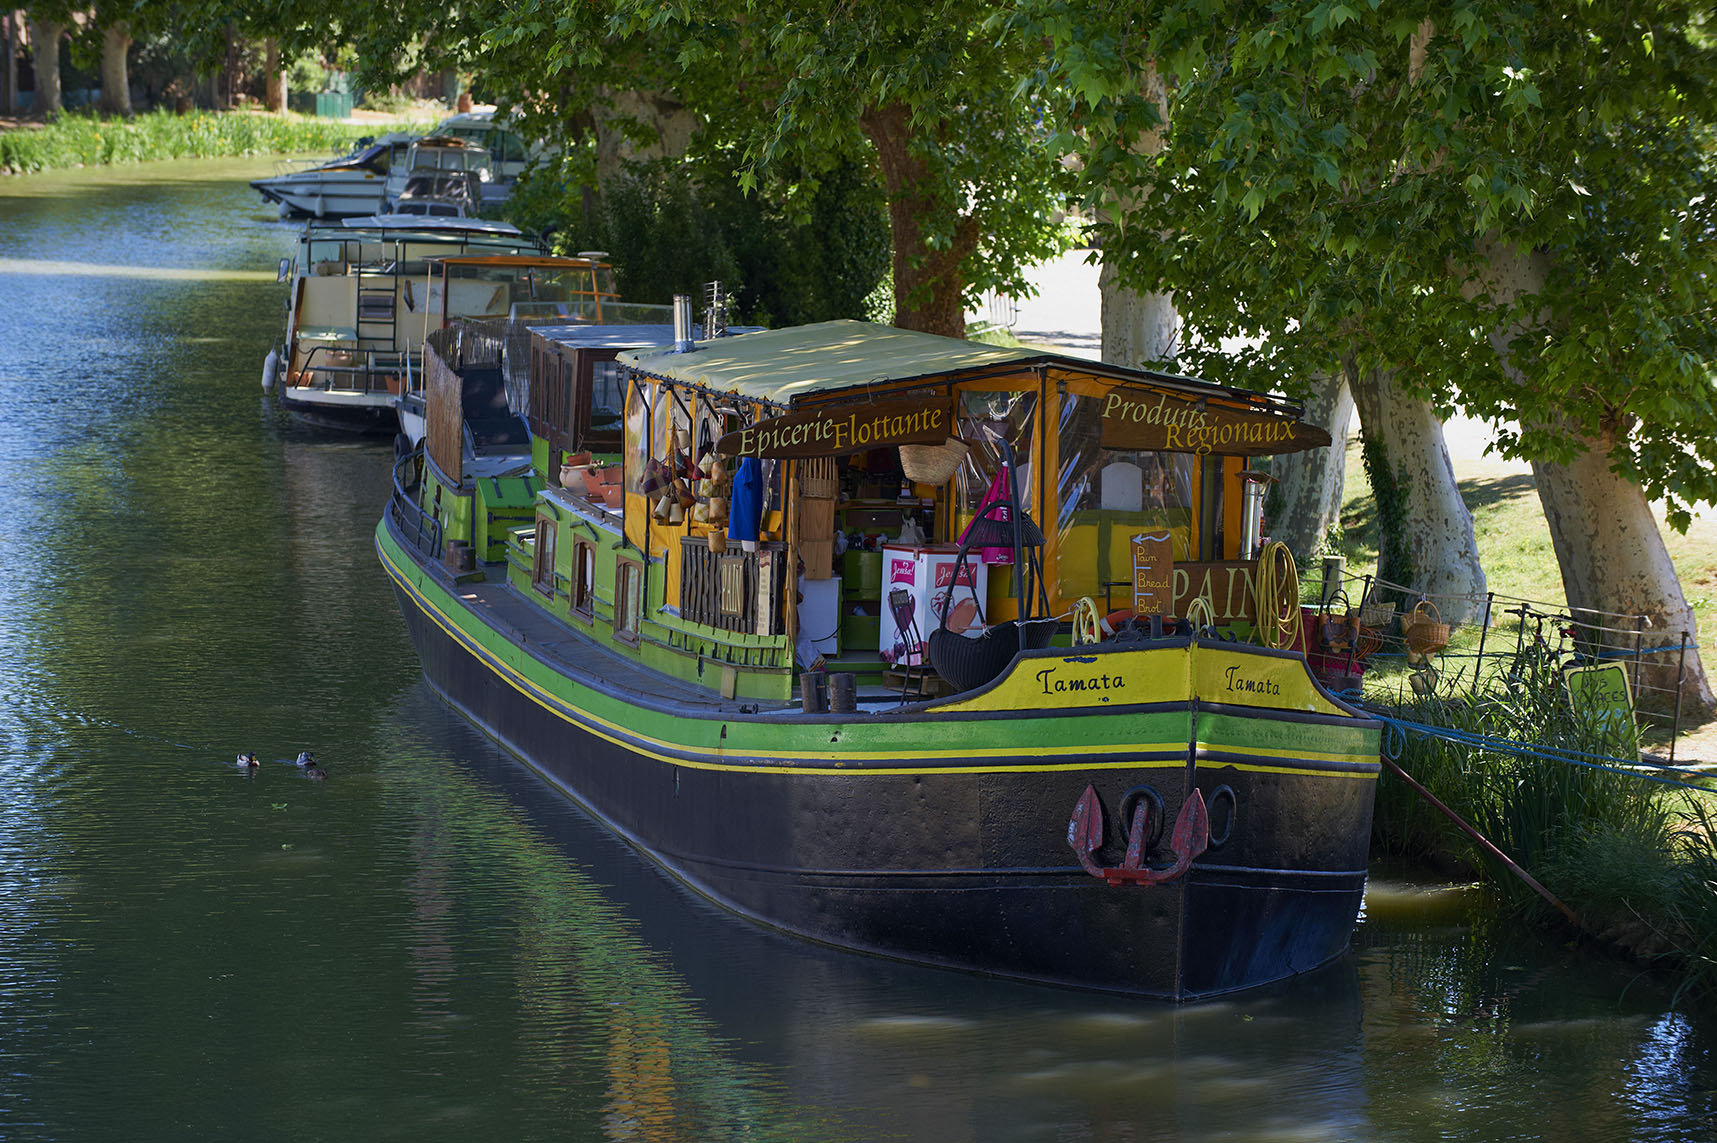 France, Languedoc-Roussillon, Aude (11), city of Le Somail, Canal du Midi, shop boat